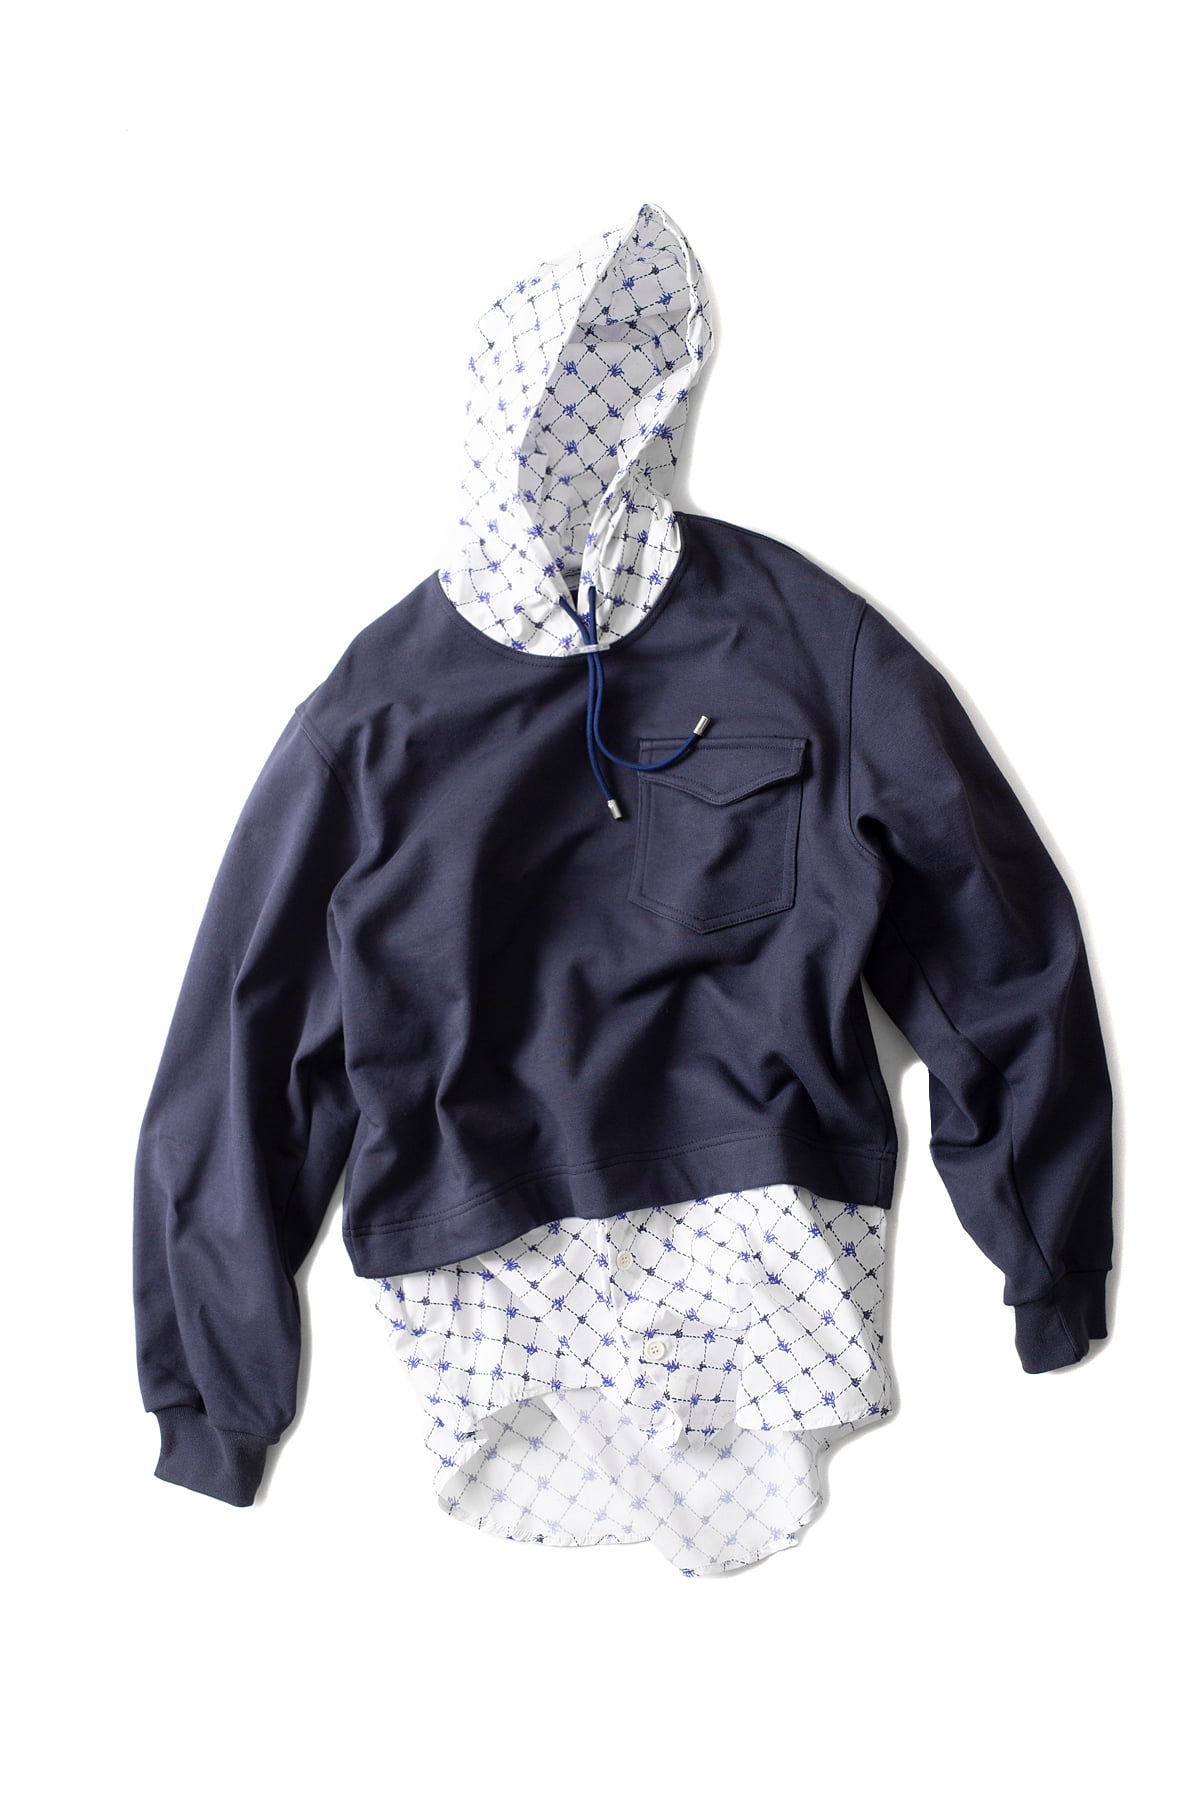 SUNNEI : Hoodie With Popeline Details (Navy)